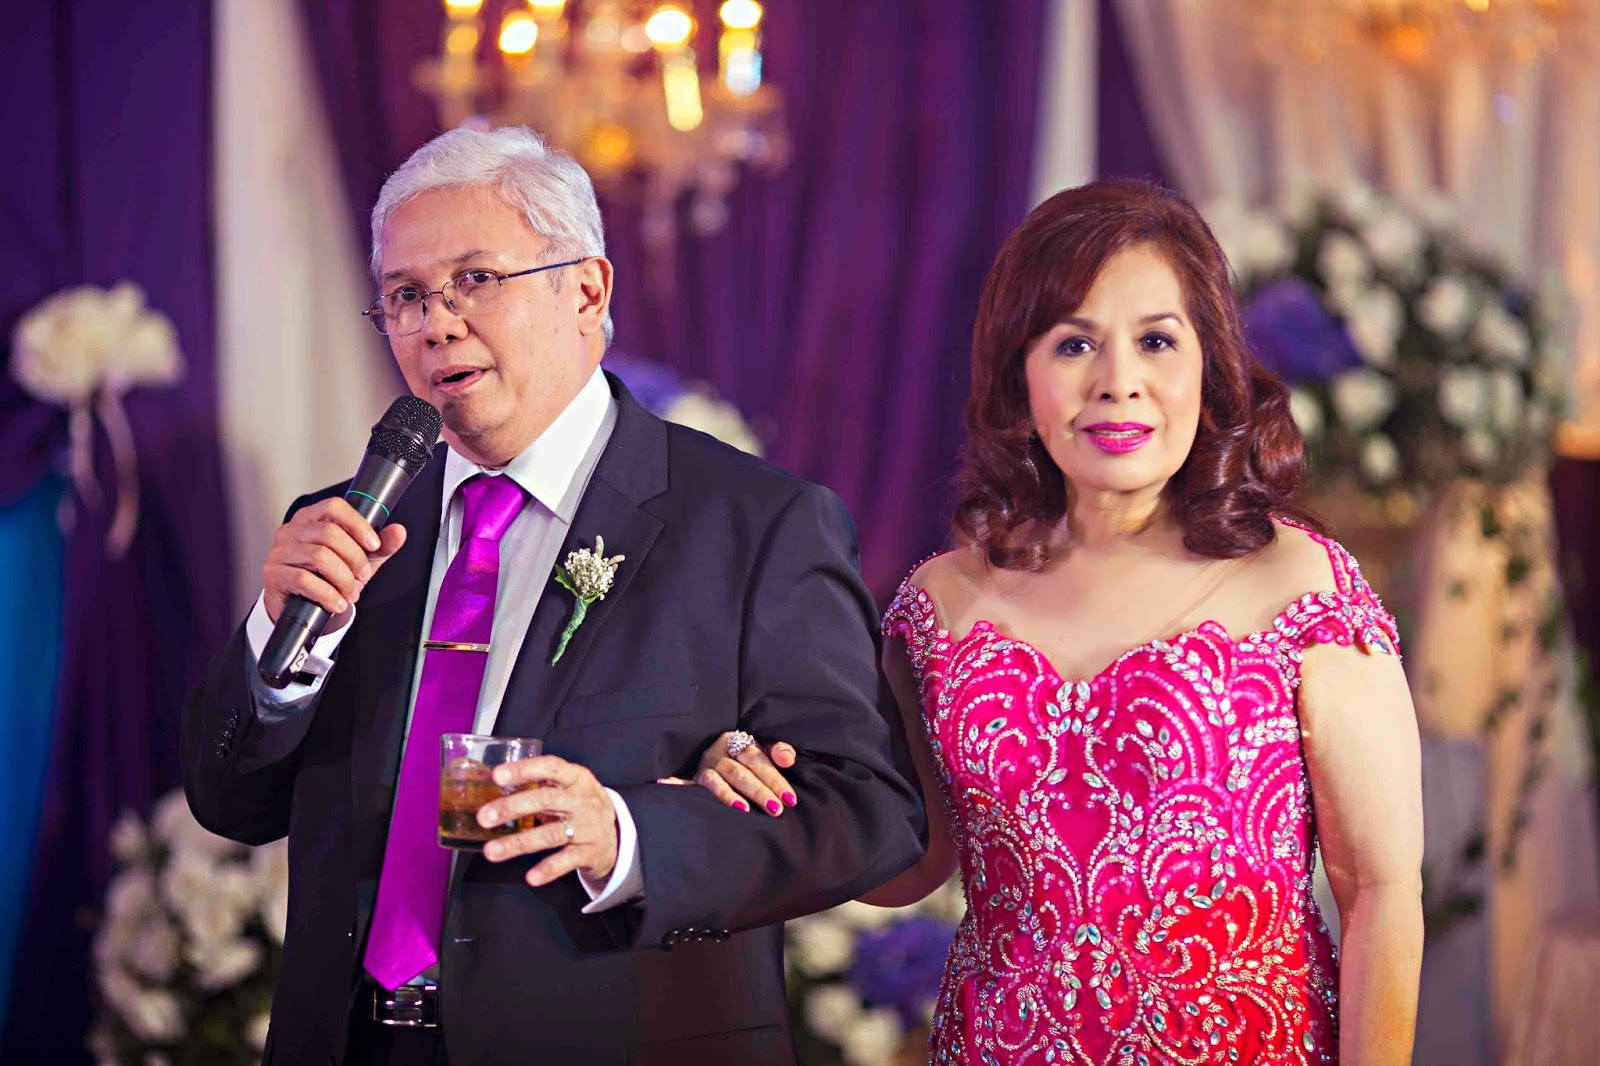 Father of the Groom's Speech